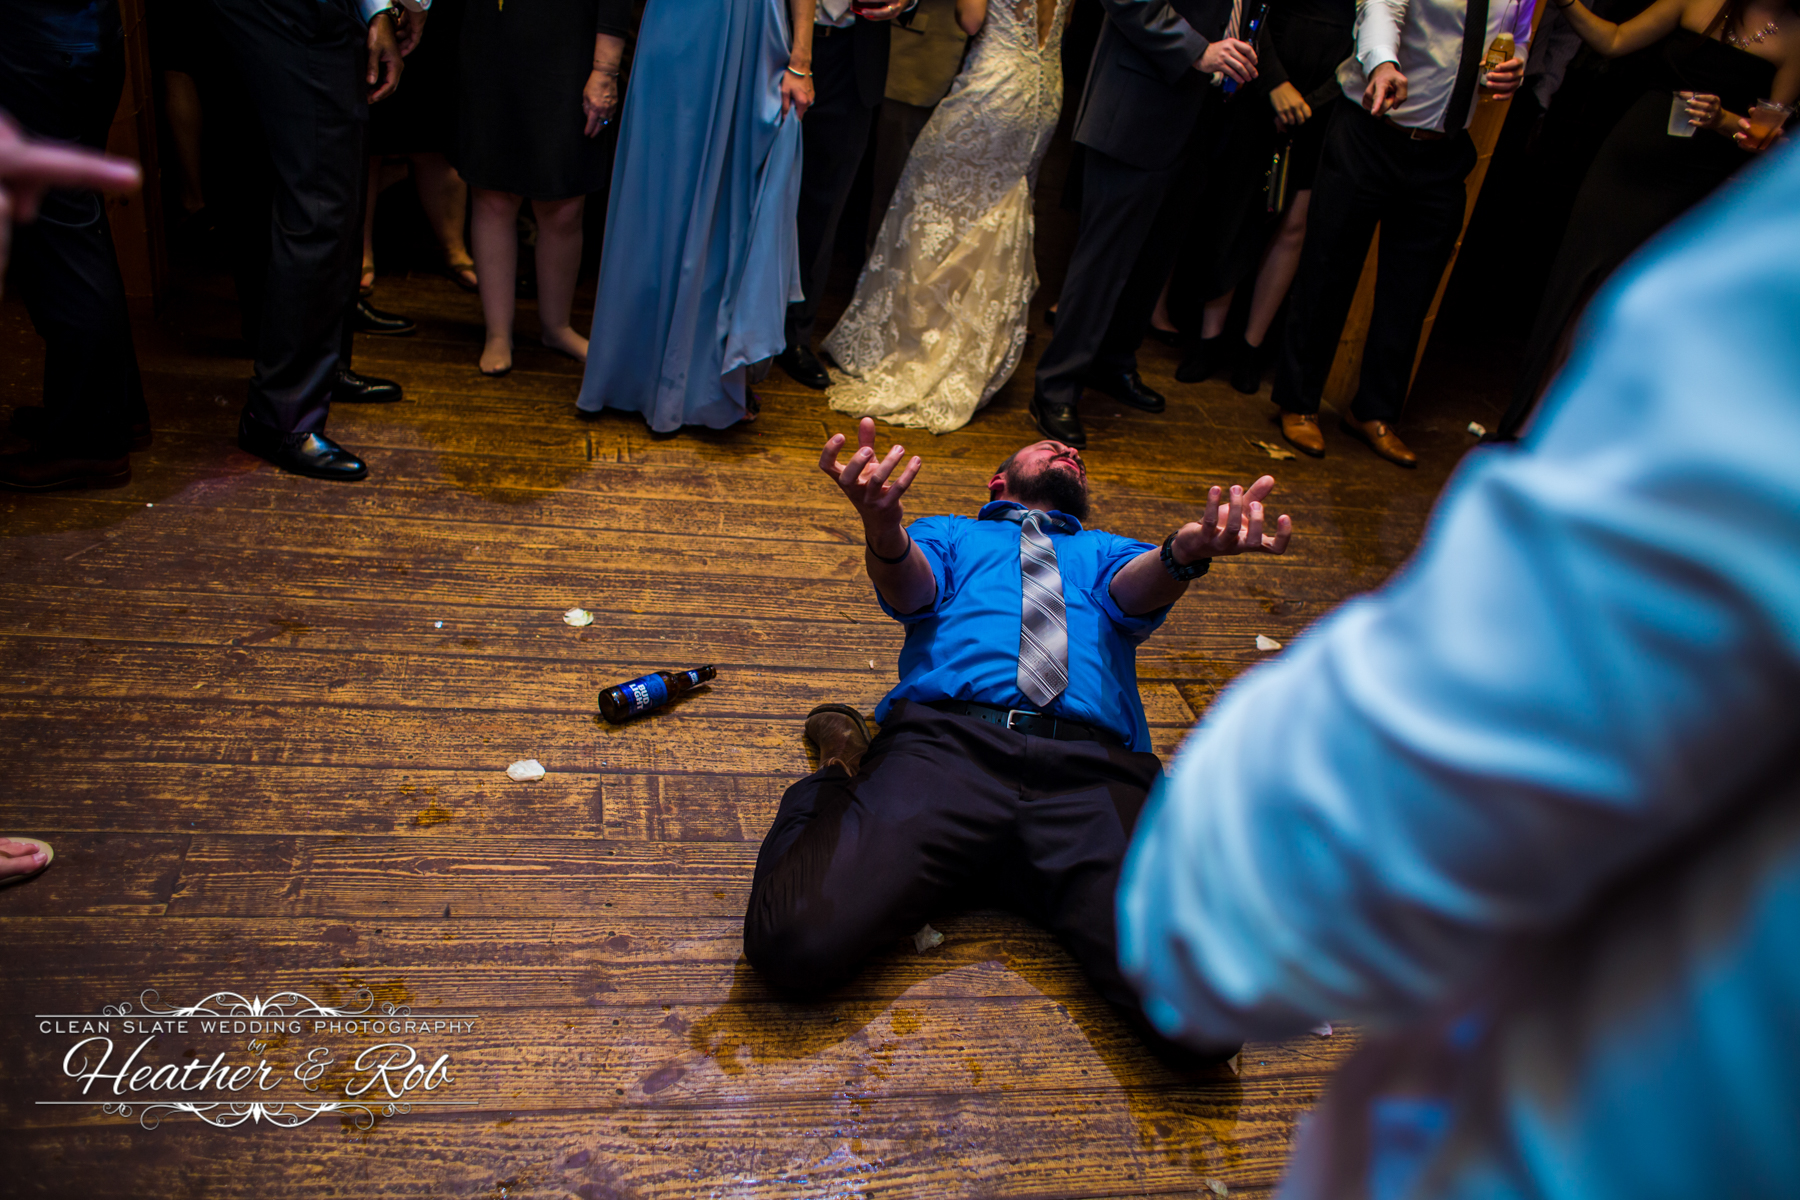 guy in blue shirt laying on the dance floor singing